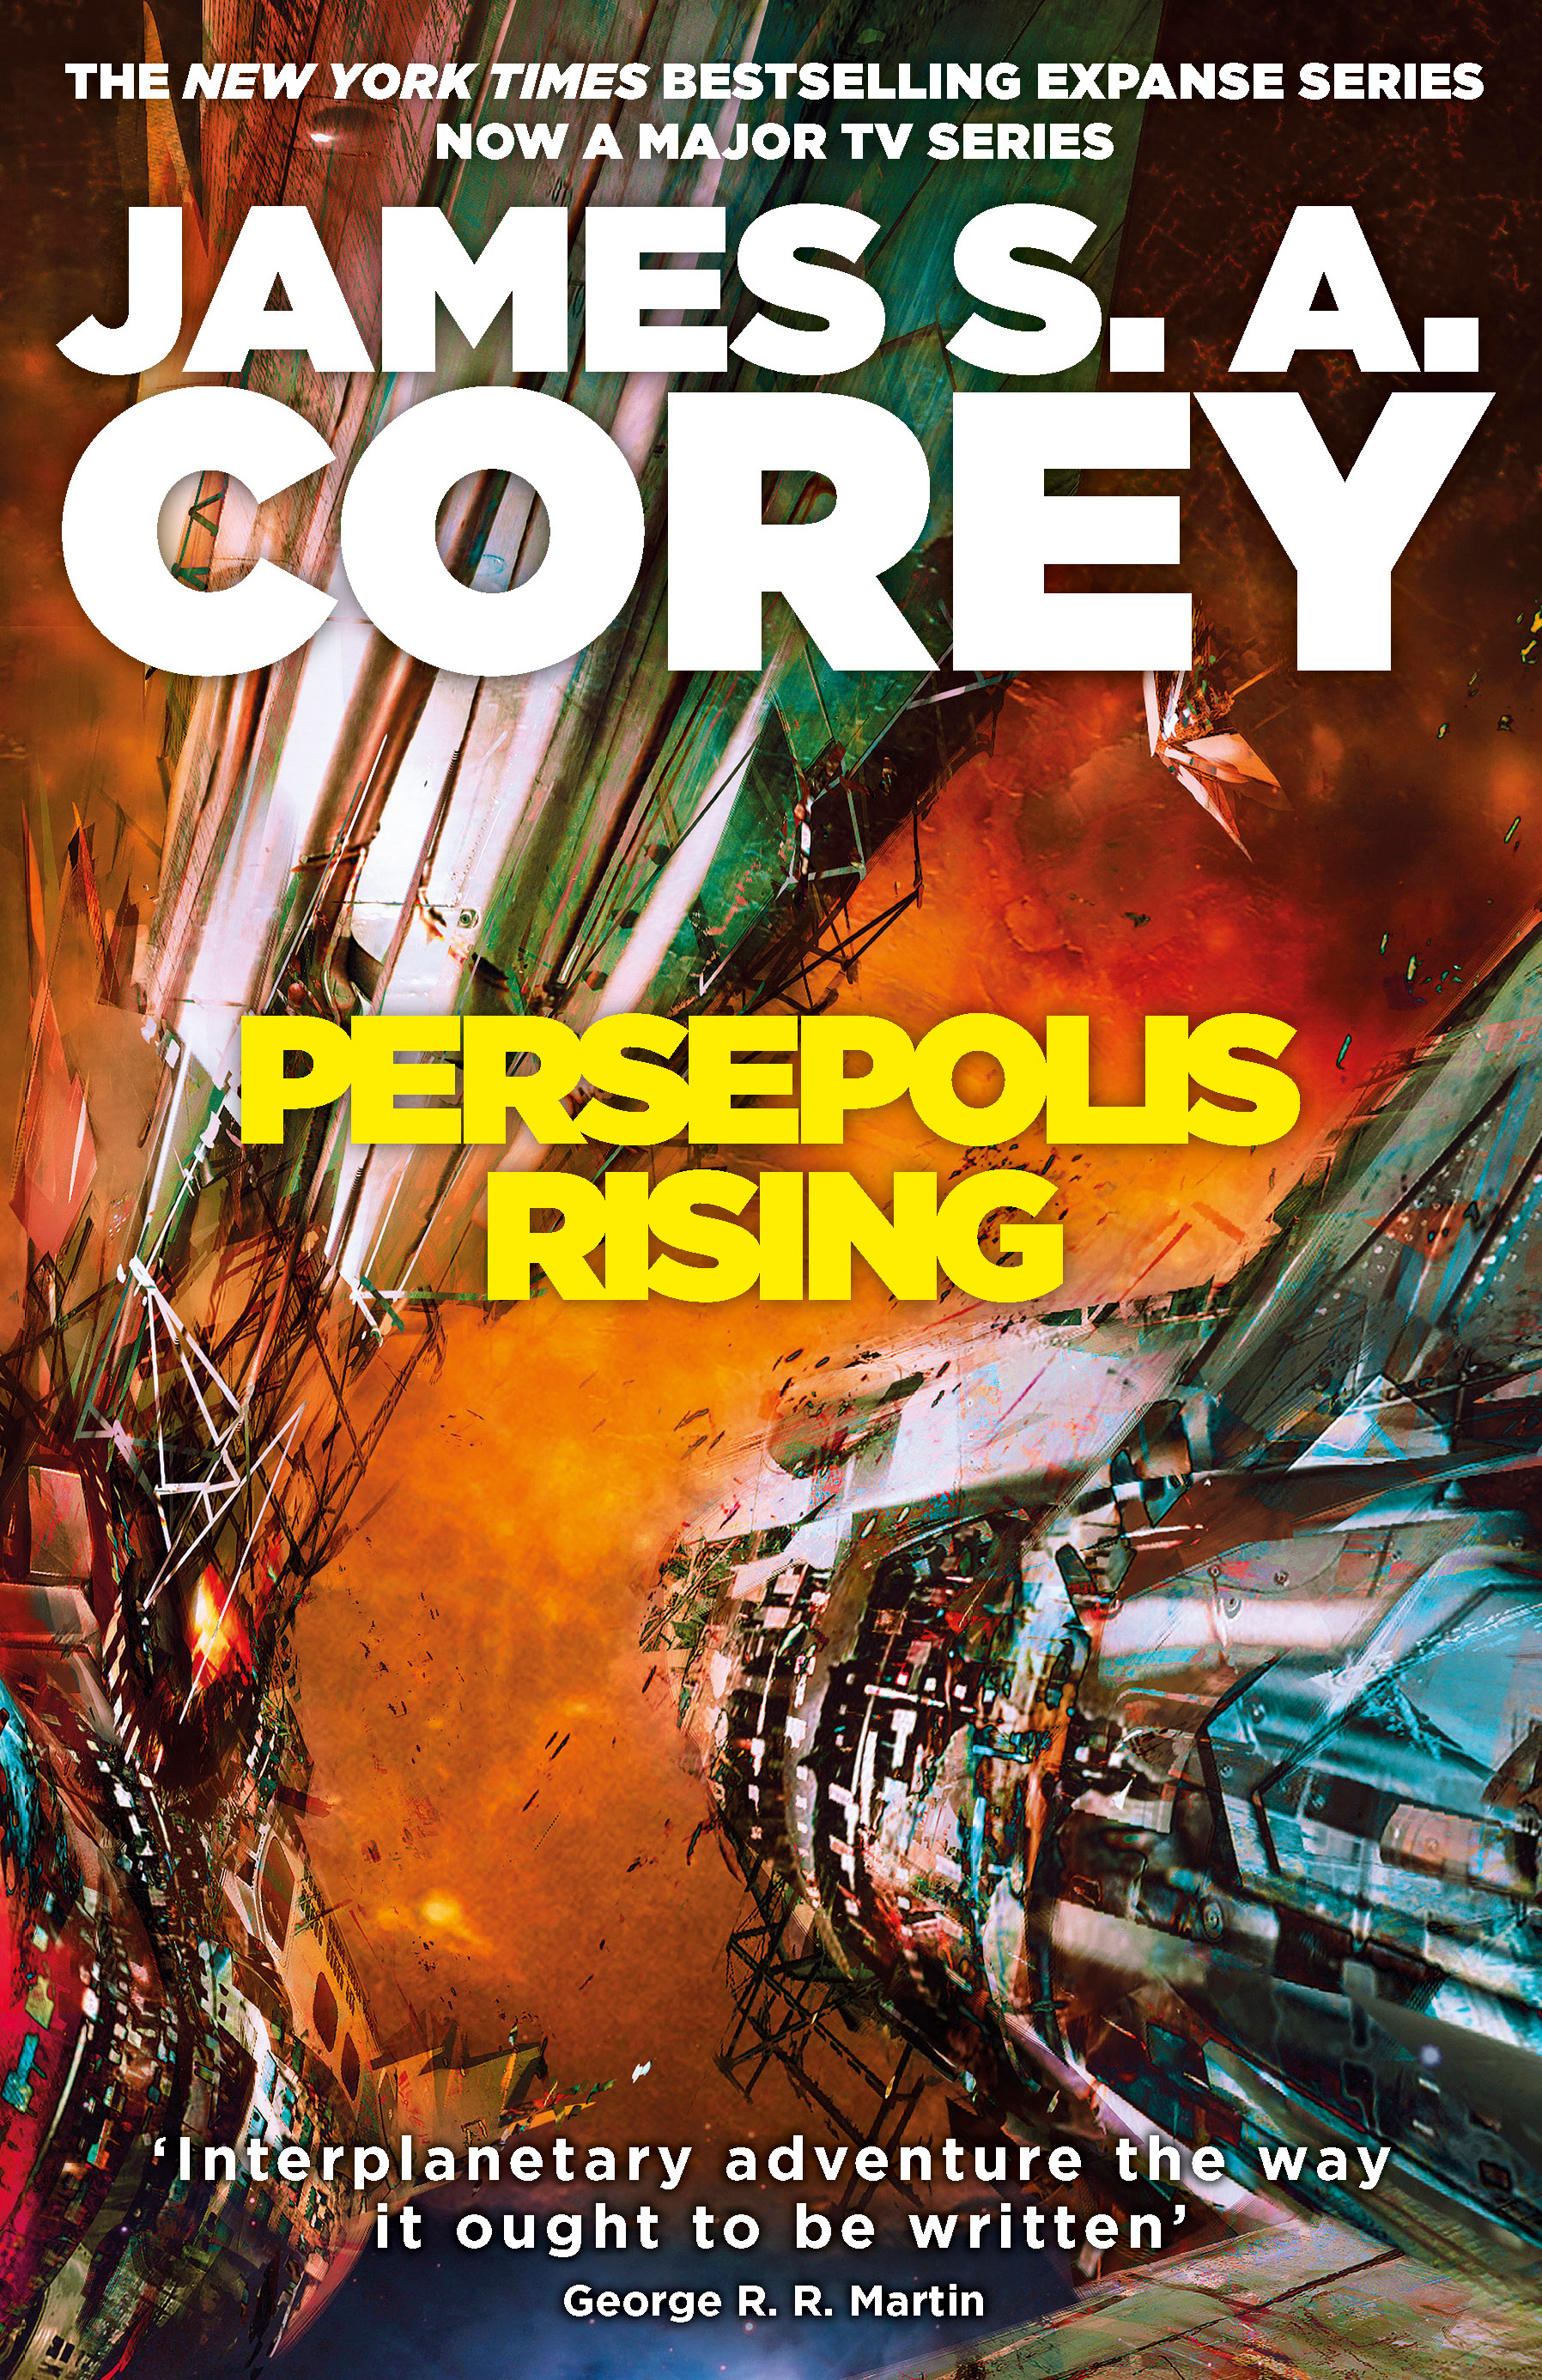 Persepolis Rising: Book 7 of the Expanse (now a major TV series on Netflix) by James S. A. Corey, ISBN: 9780356510316